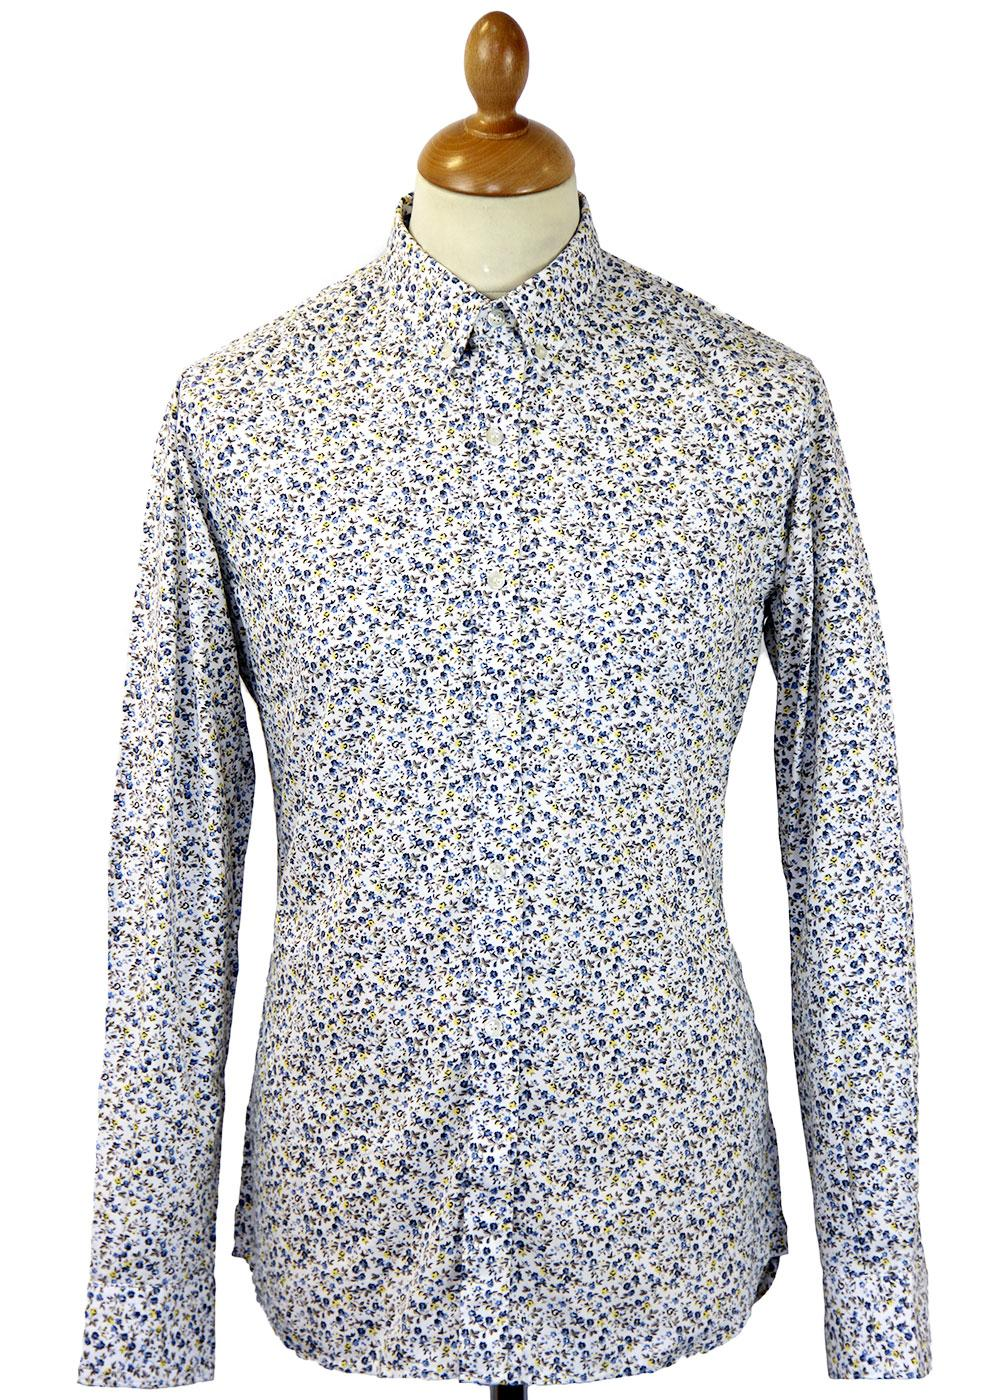 Floral Print French Connection Retro 60s Mod Shirt